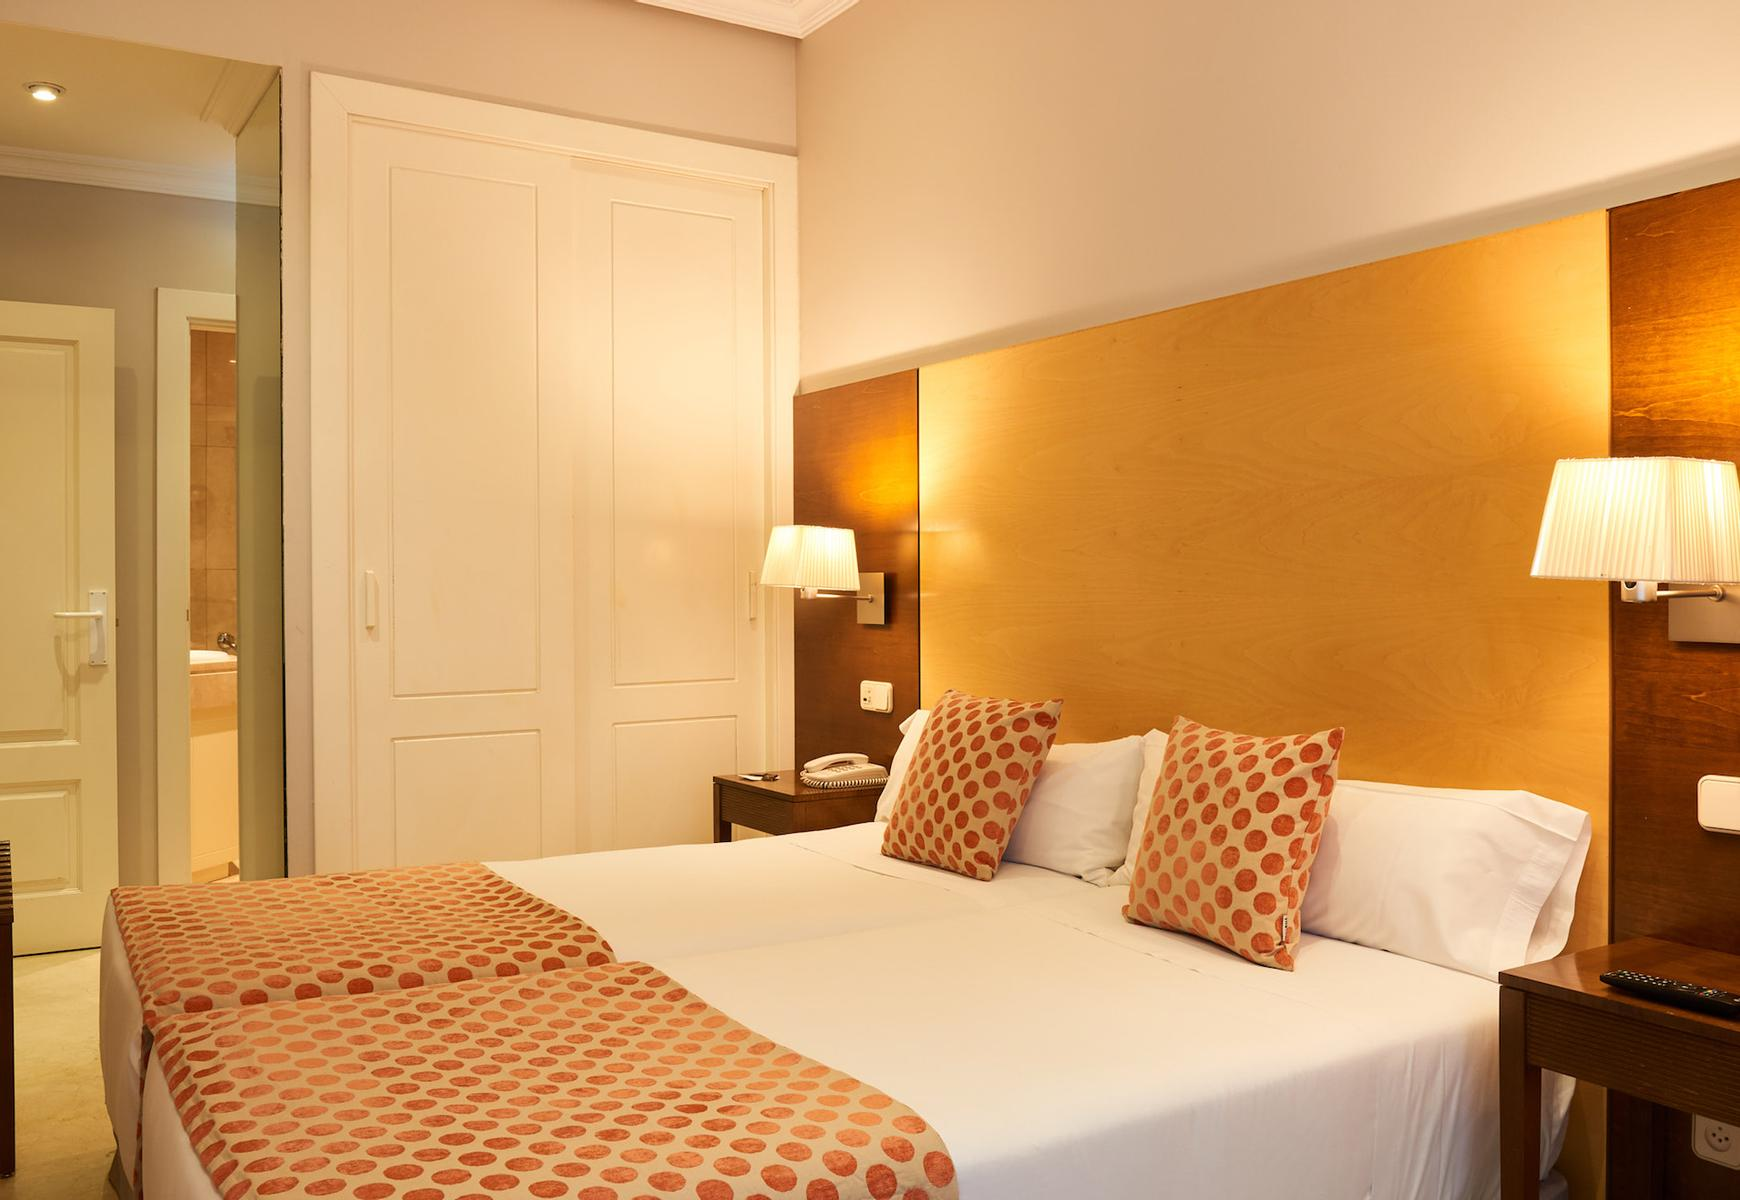 Hotel Suites Barrio de Salamanca | Madrid | Accommodation 04 - 1